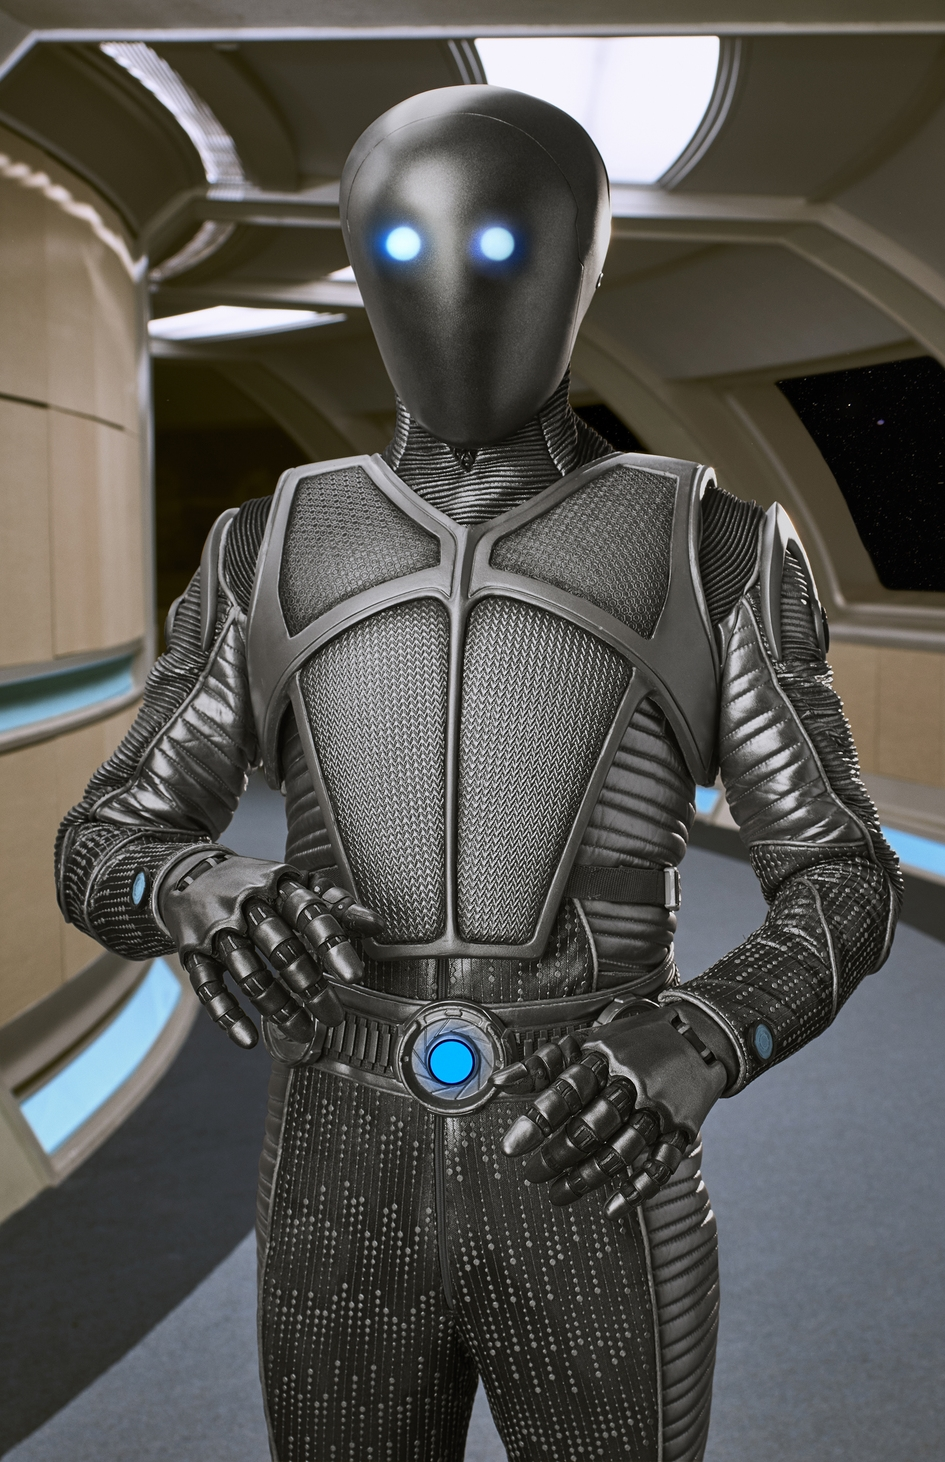 Isaac, the Kaylon representative to the Planetary Union  Fair Use: this image is copyrighted, but used here under Fair Use guidelines. The image is owned by Fuzzy Door Productions and/or 20th Century Fox Television.